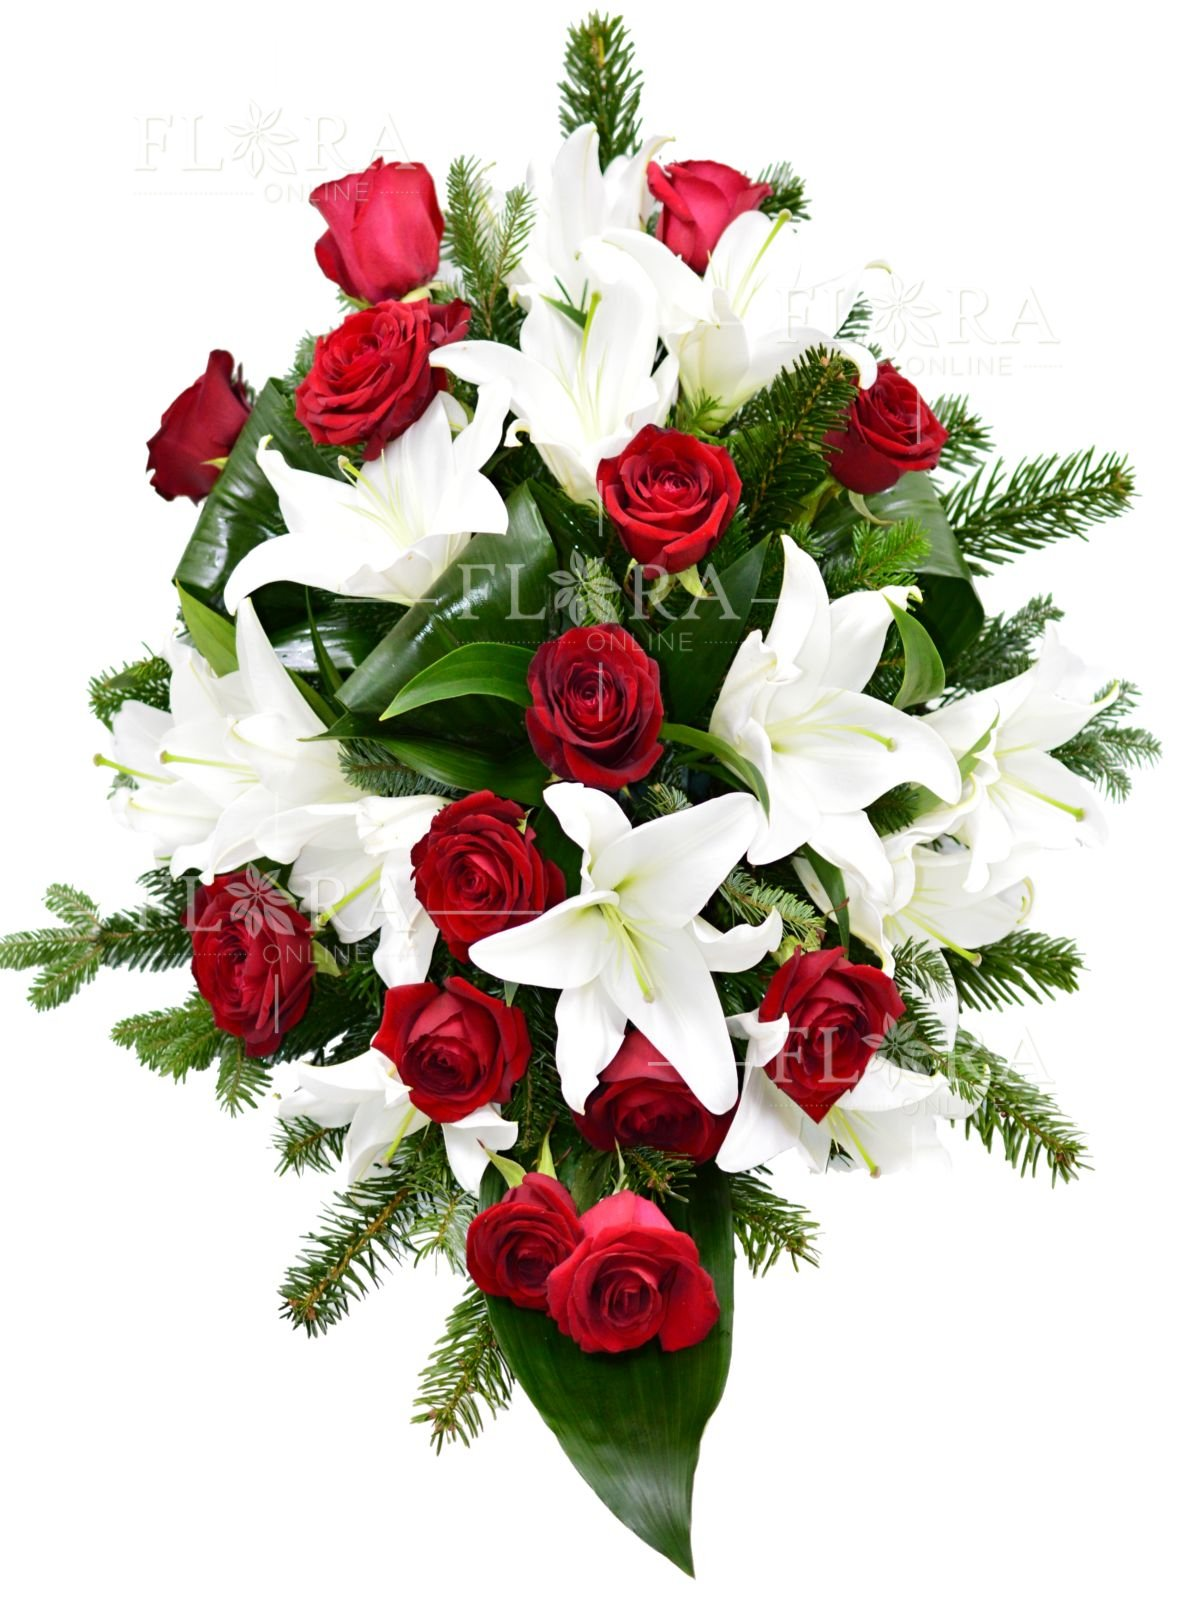 Funeral bouquet 13 flora online discount 389 on your next purchase funeral flower delivery of bouquets anywhere izmirmasajfo